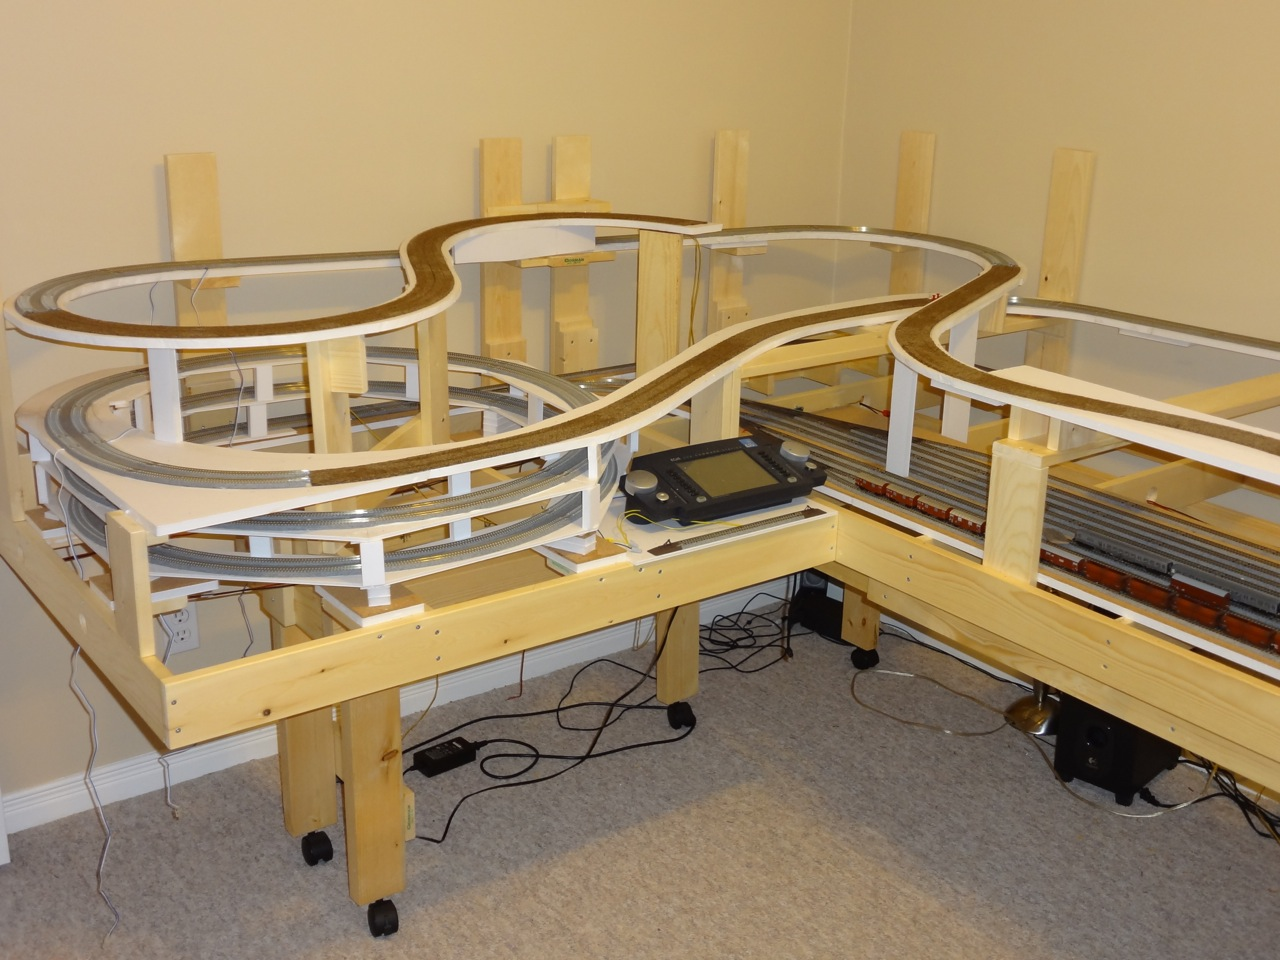 Euro Rail Hobbies And More Blog: Building An N-Scale